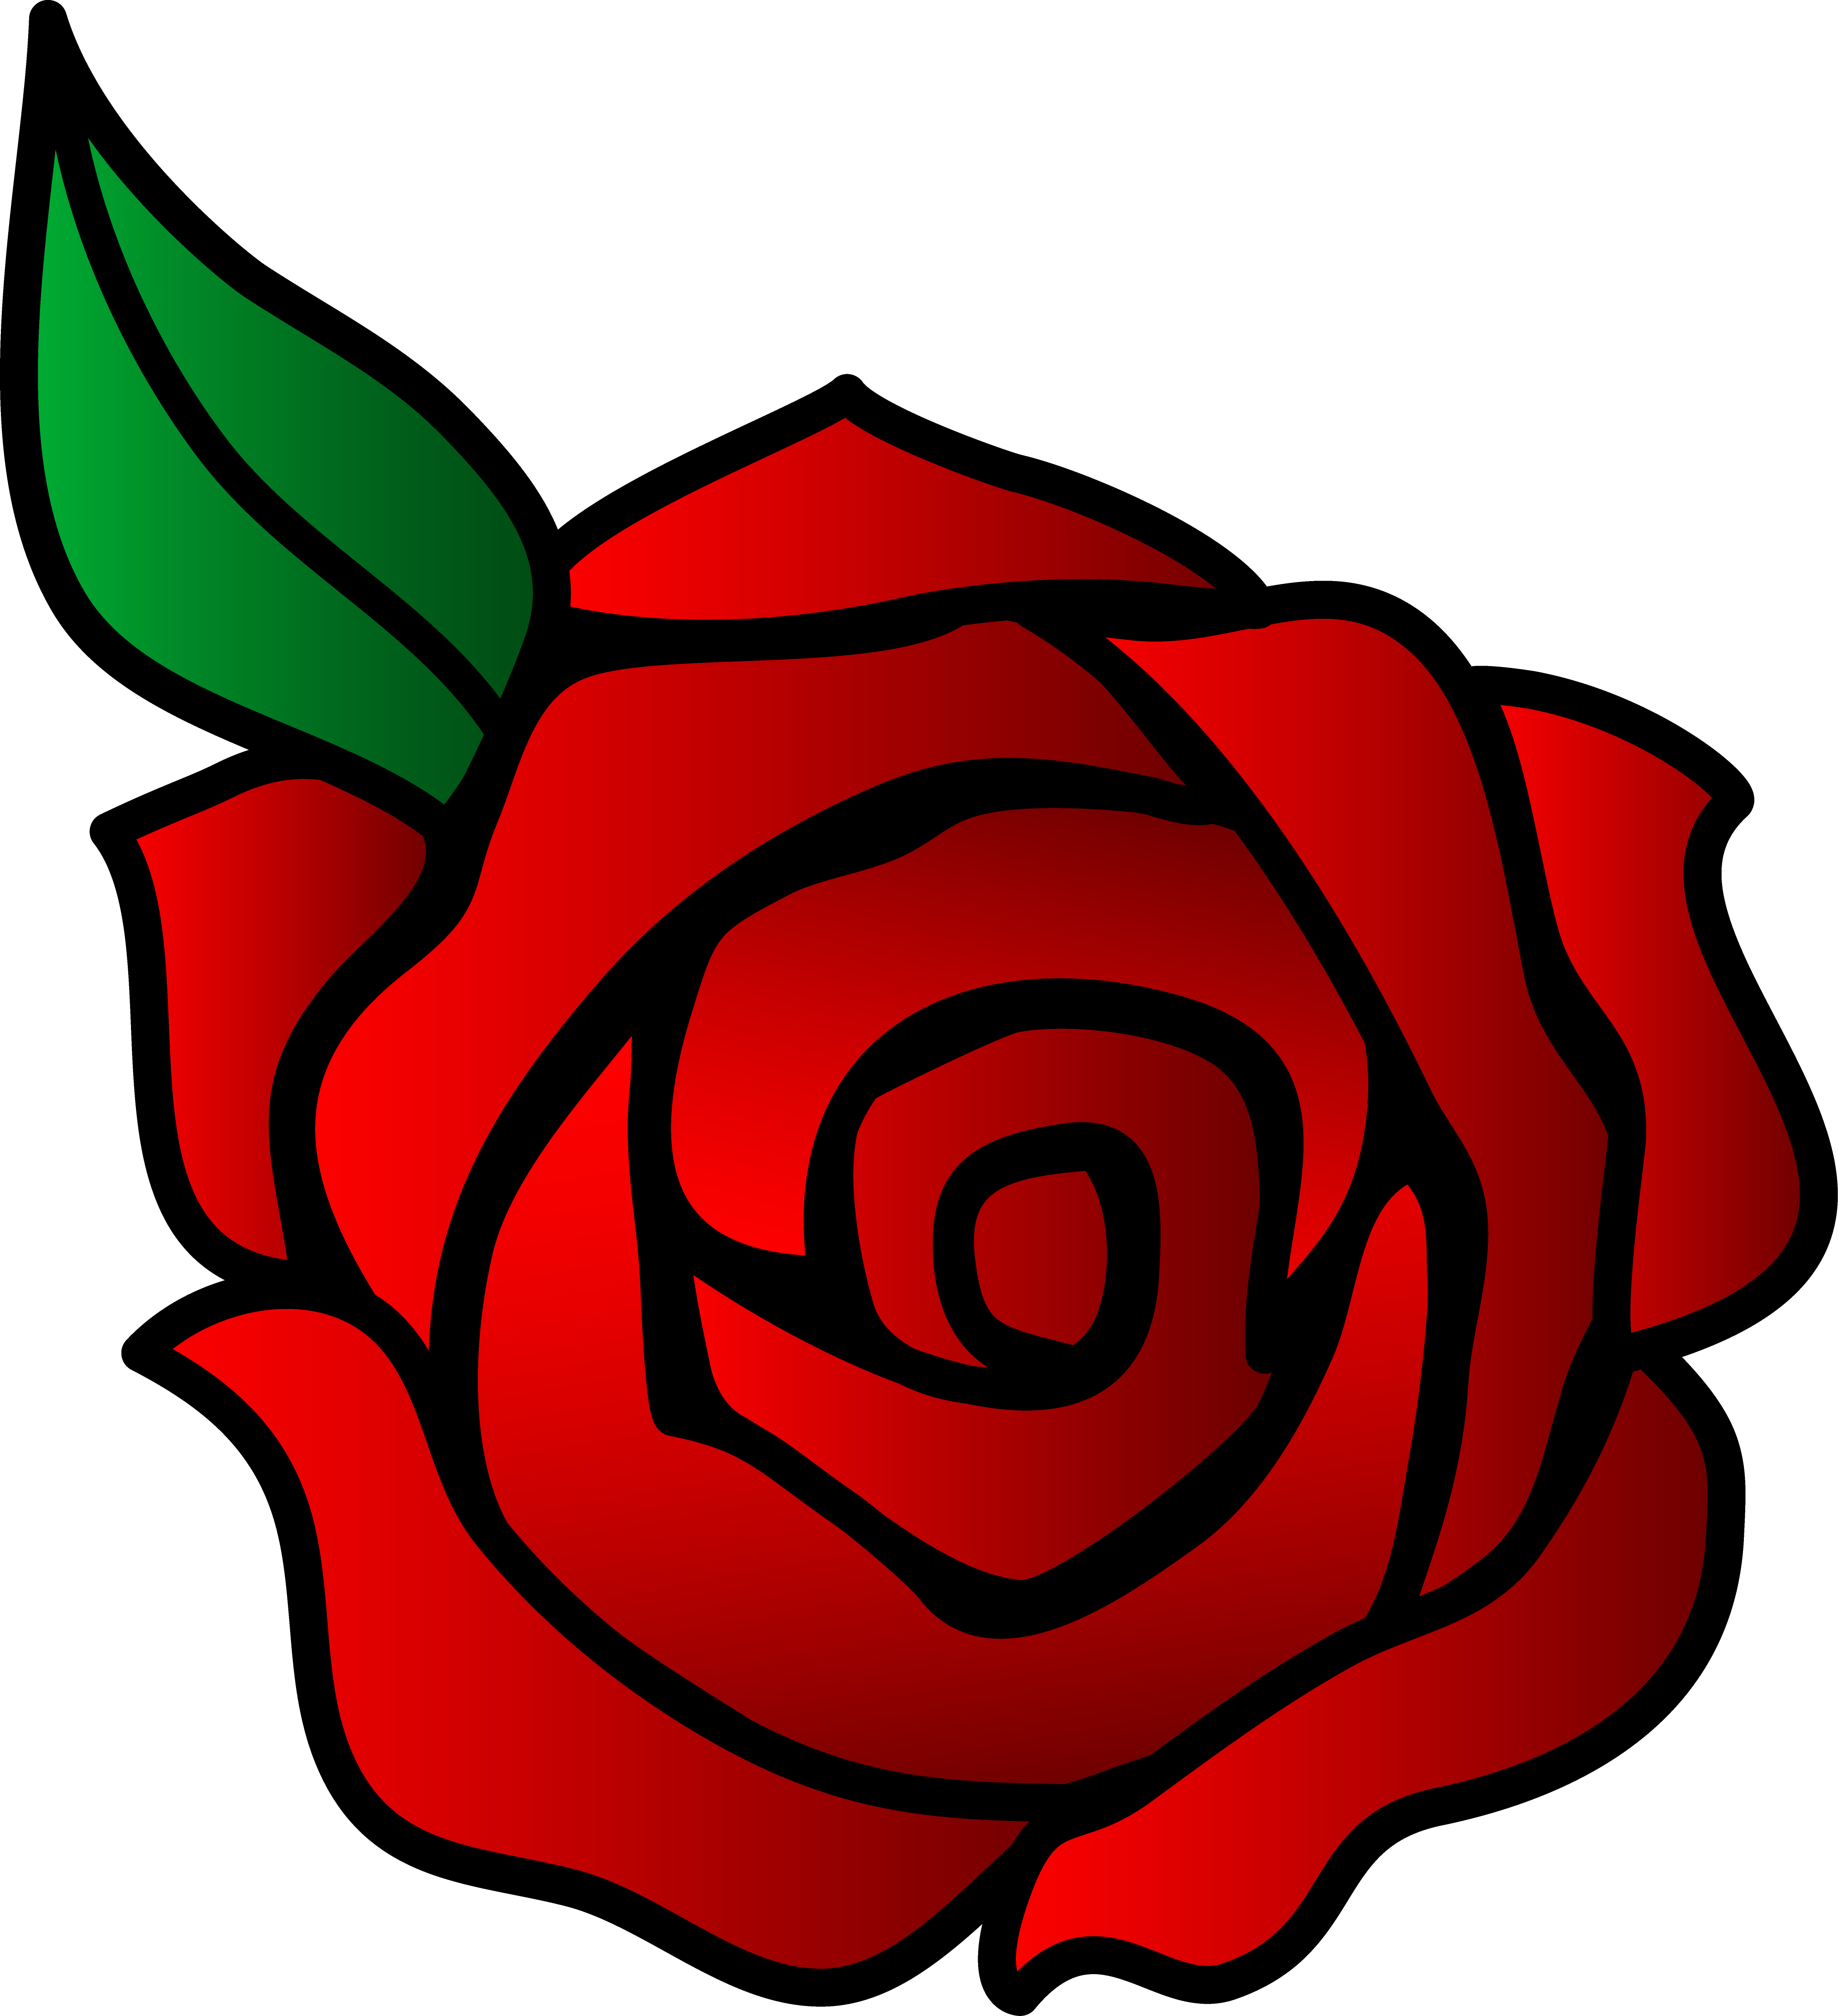 Free red rose download. Clipart roses easy